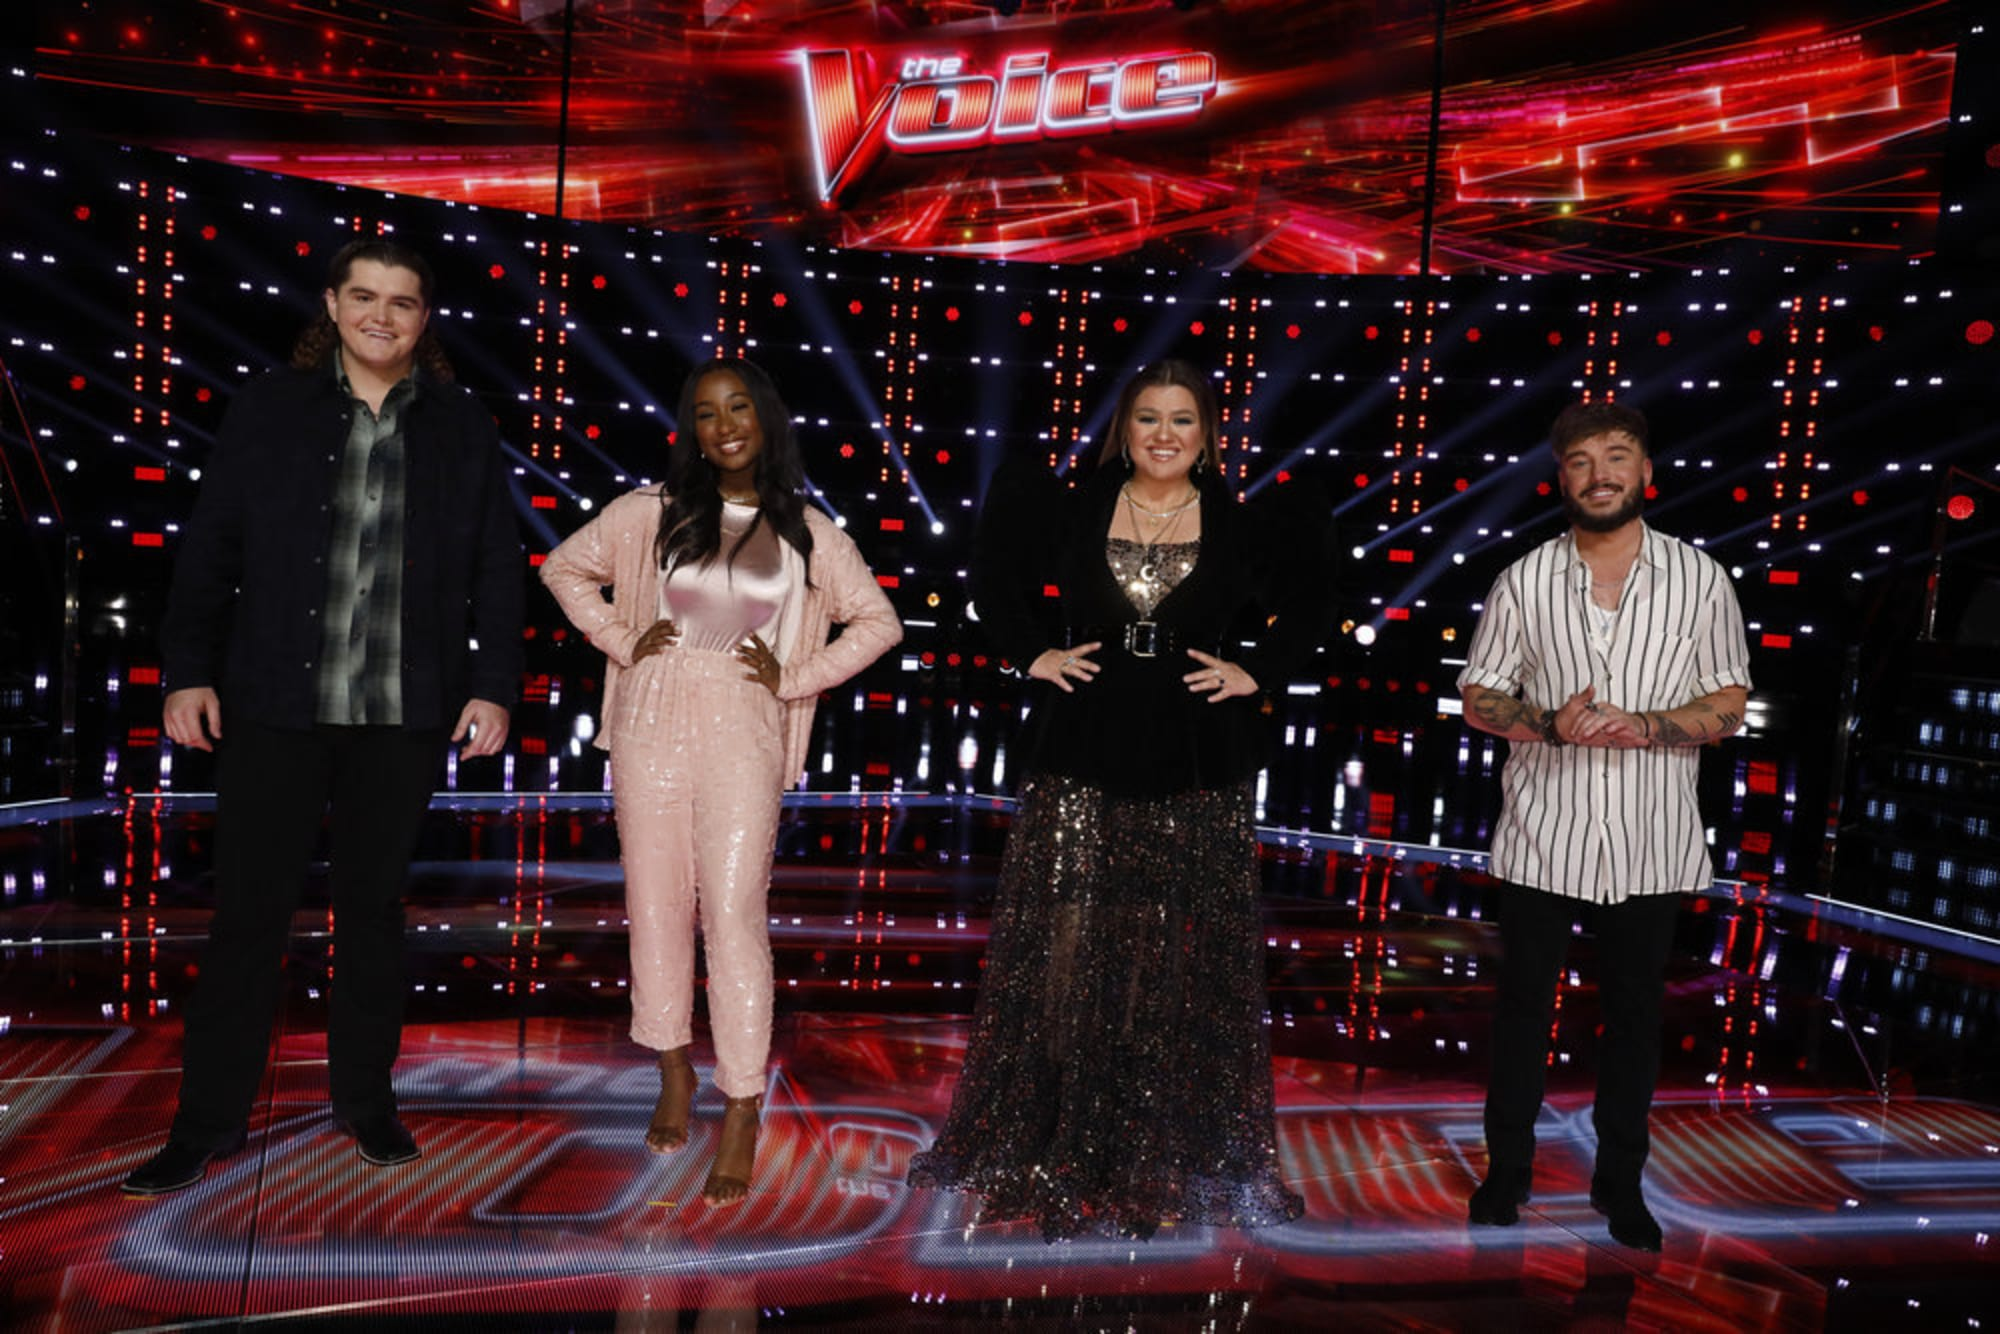 Is The Voice new tonight on NBC? Monday, May 17, 2021